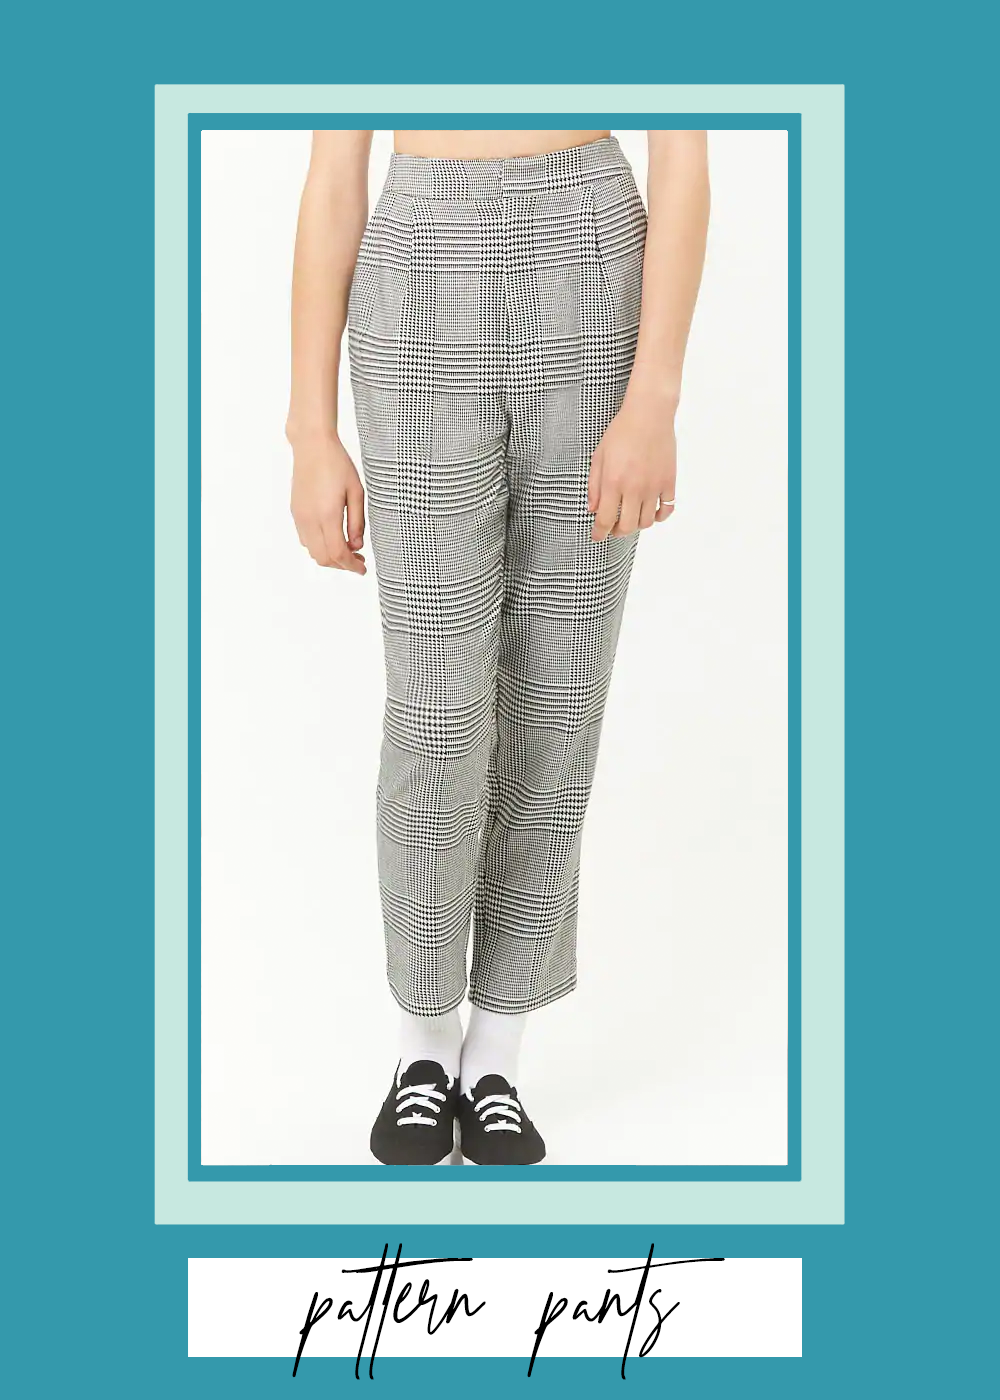 001. - Glen Plaid Pants Forever 21 // $28